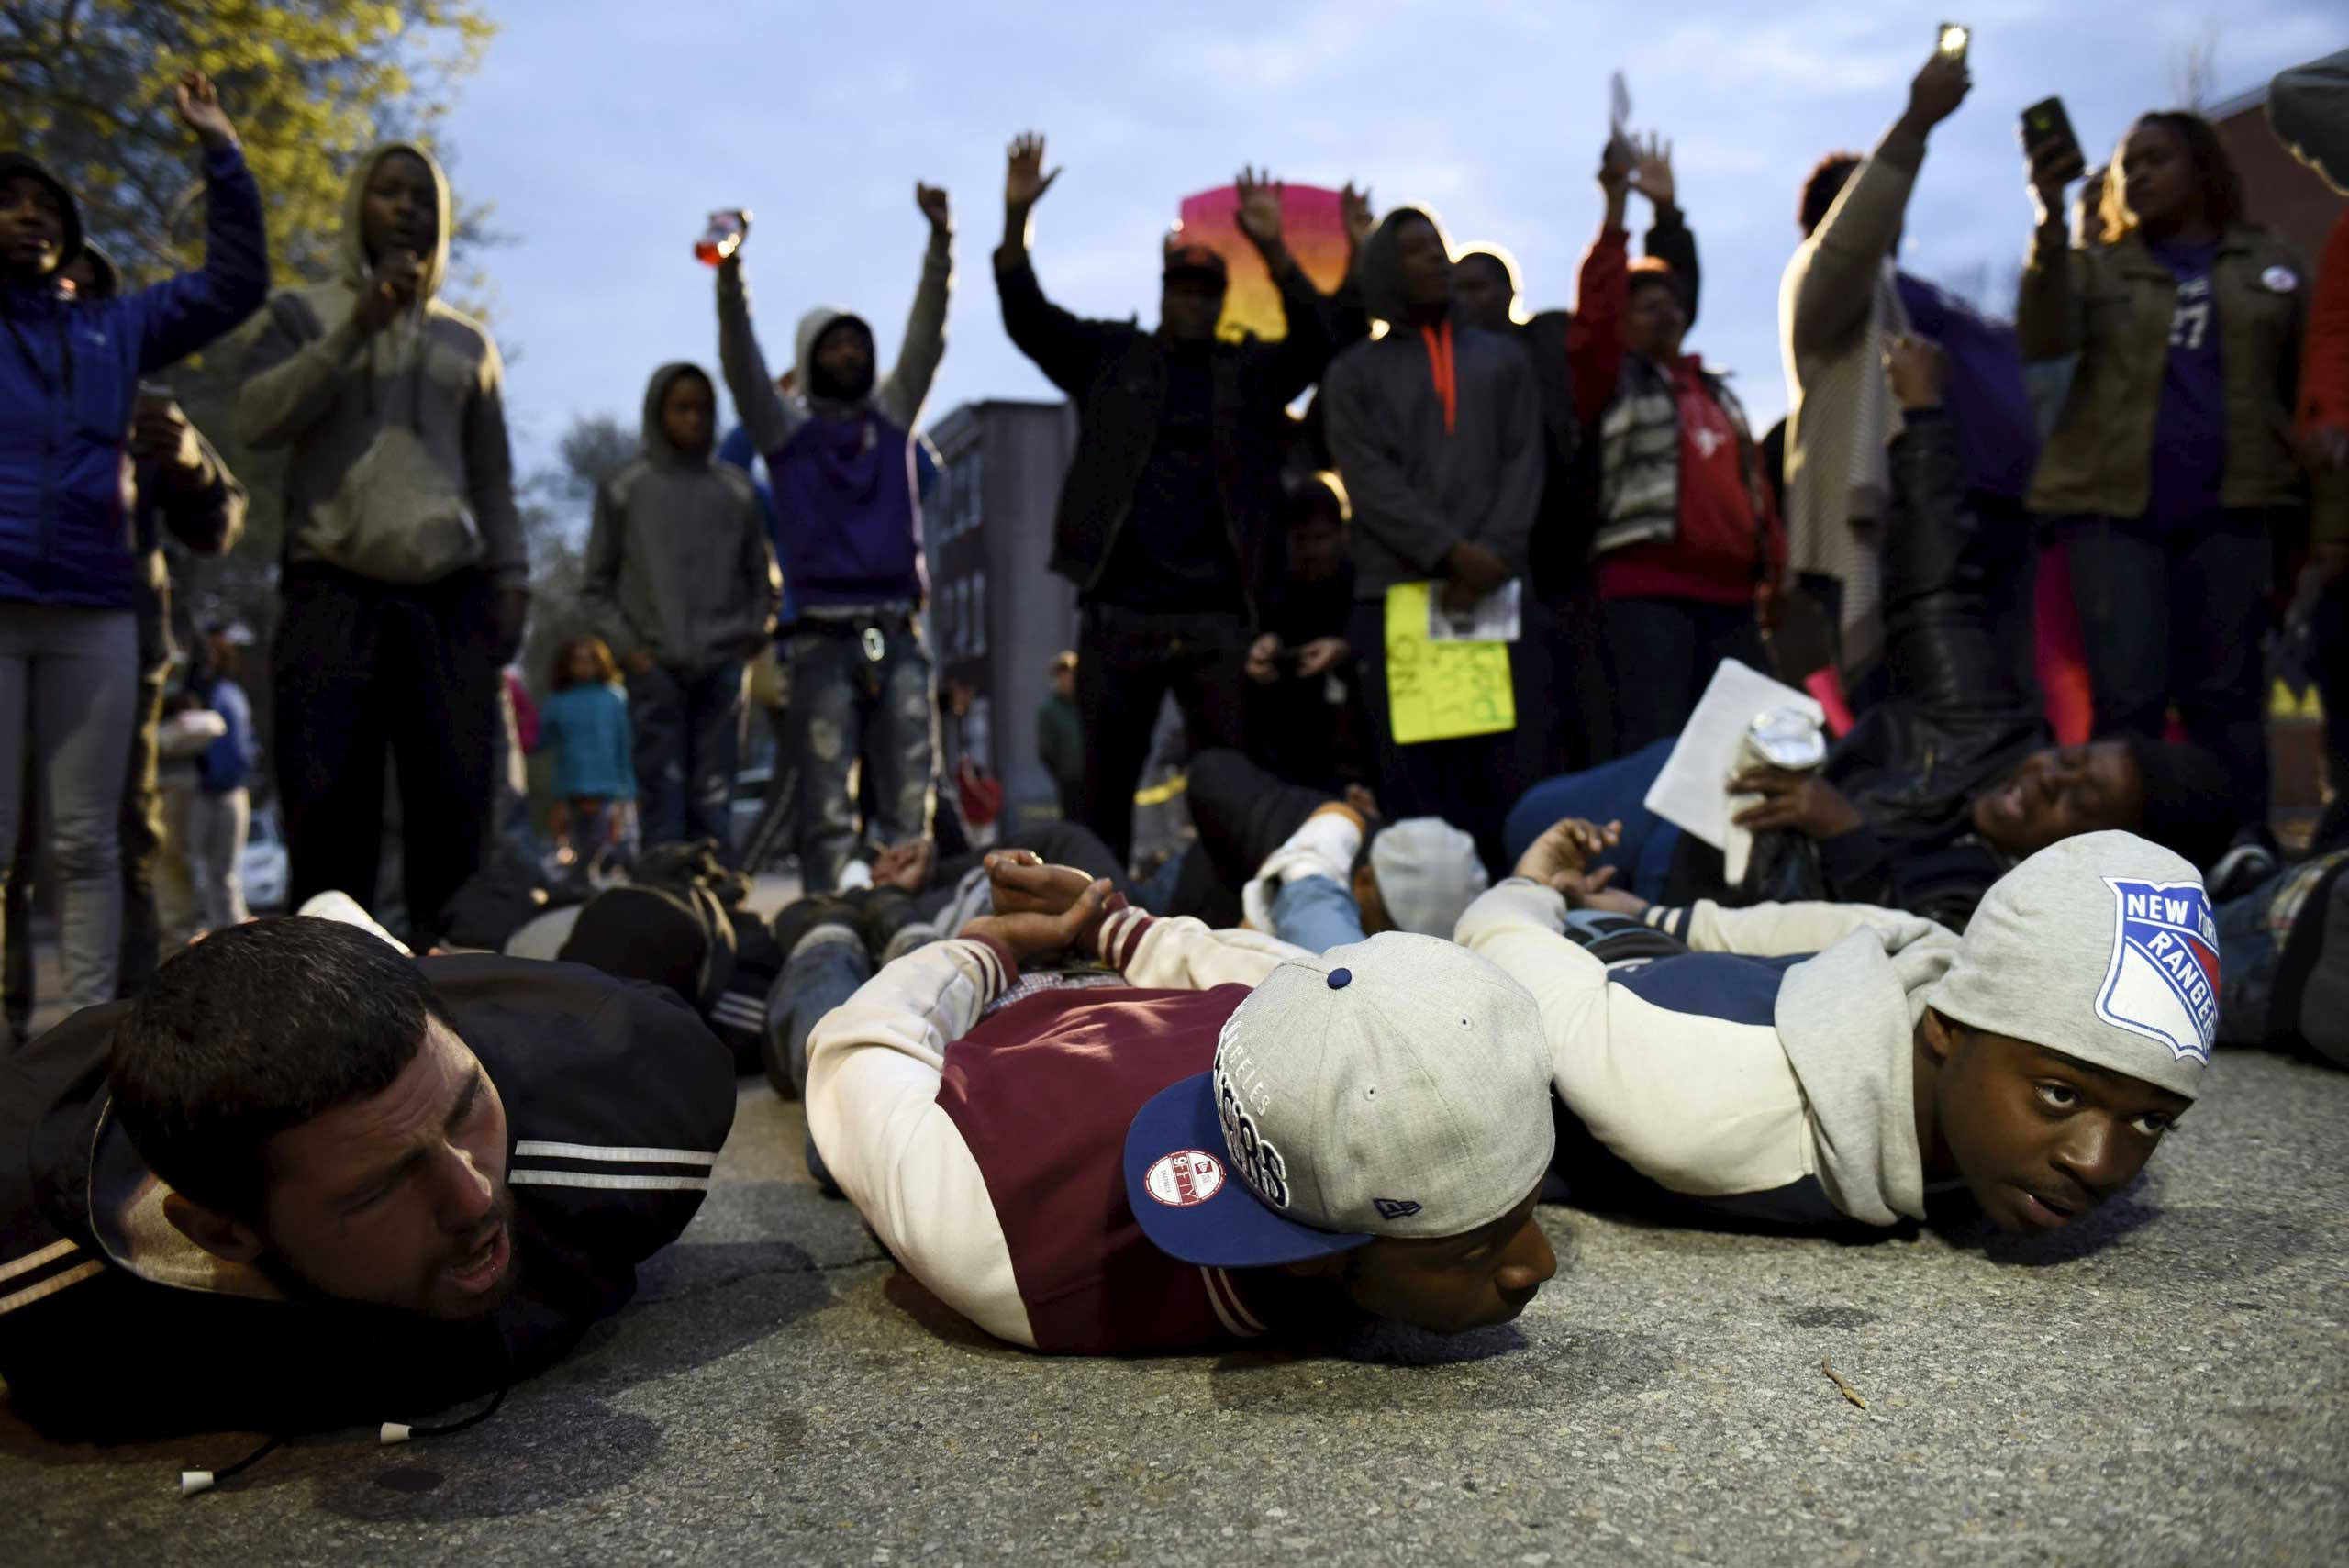 Demonstrators pretend to be arrested in front of the Baltimore Police Department Western District station to protest against the death in police custody of Freddie Gray in Baltimore on April 23, 2015.